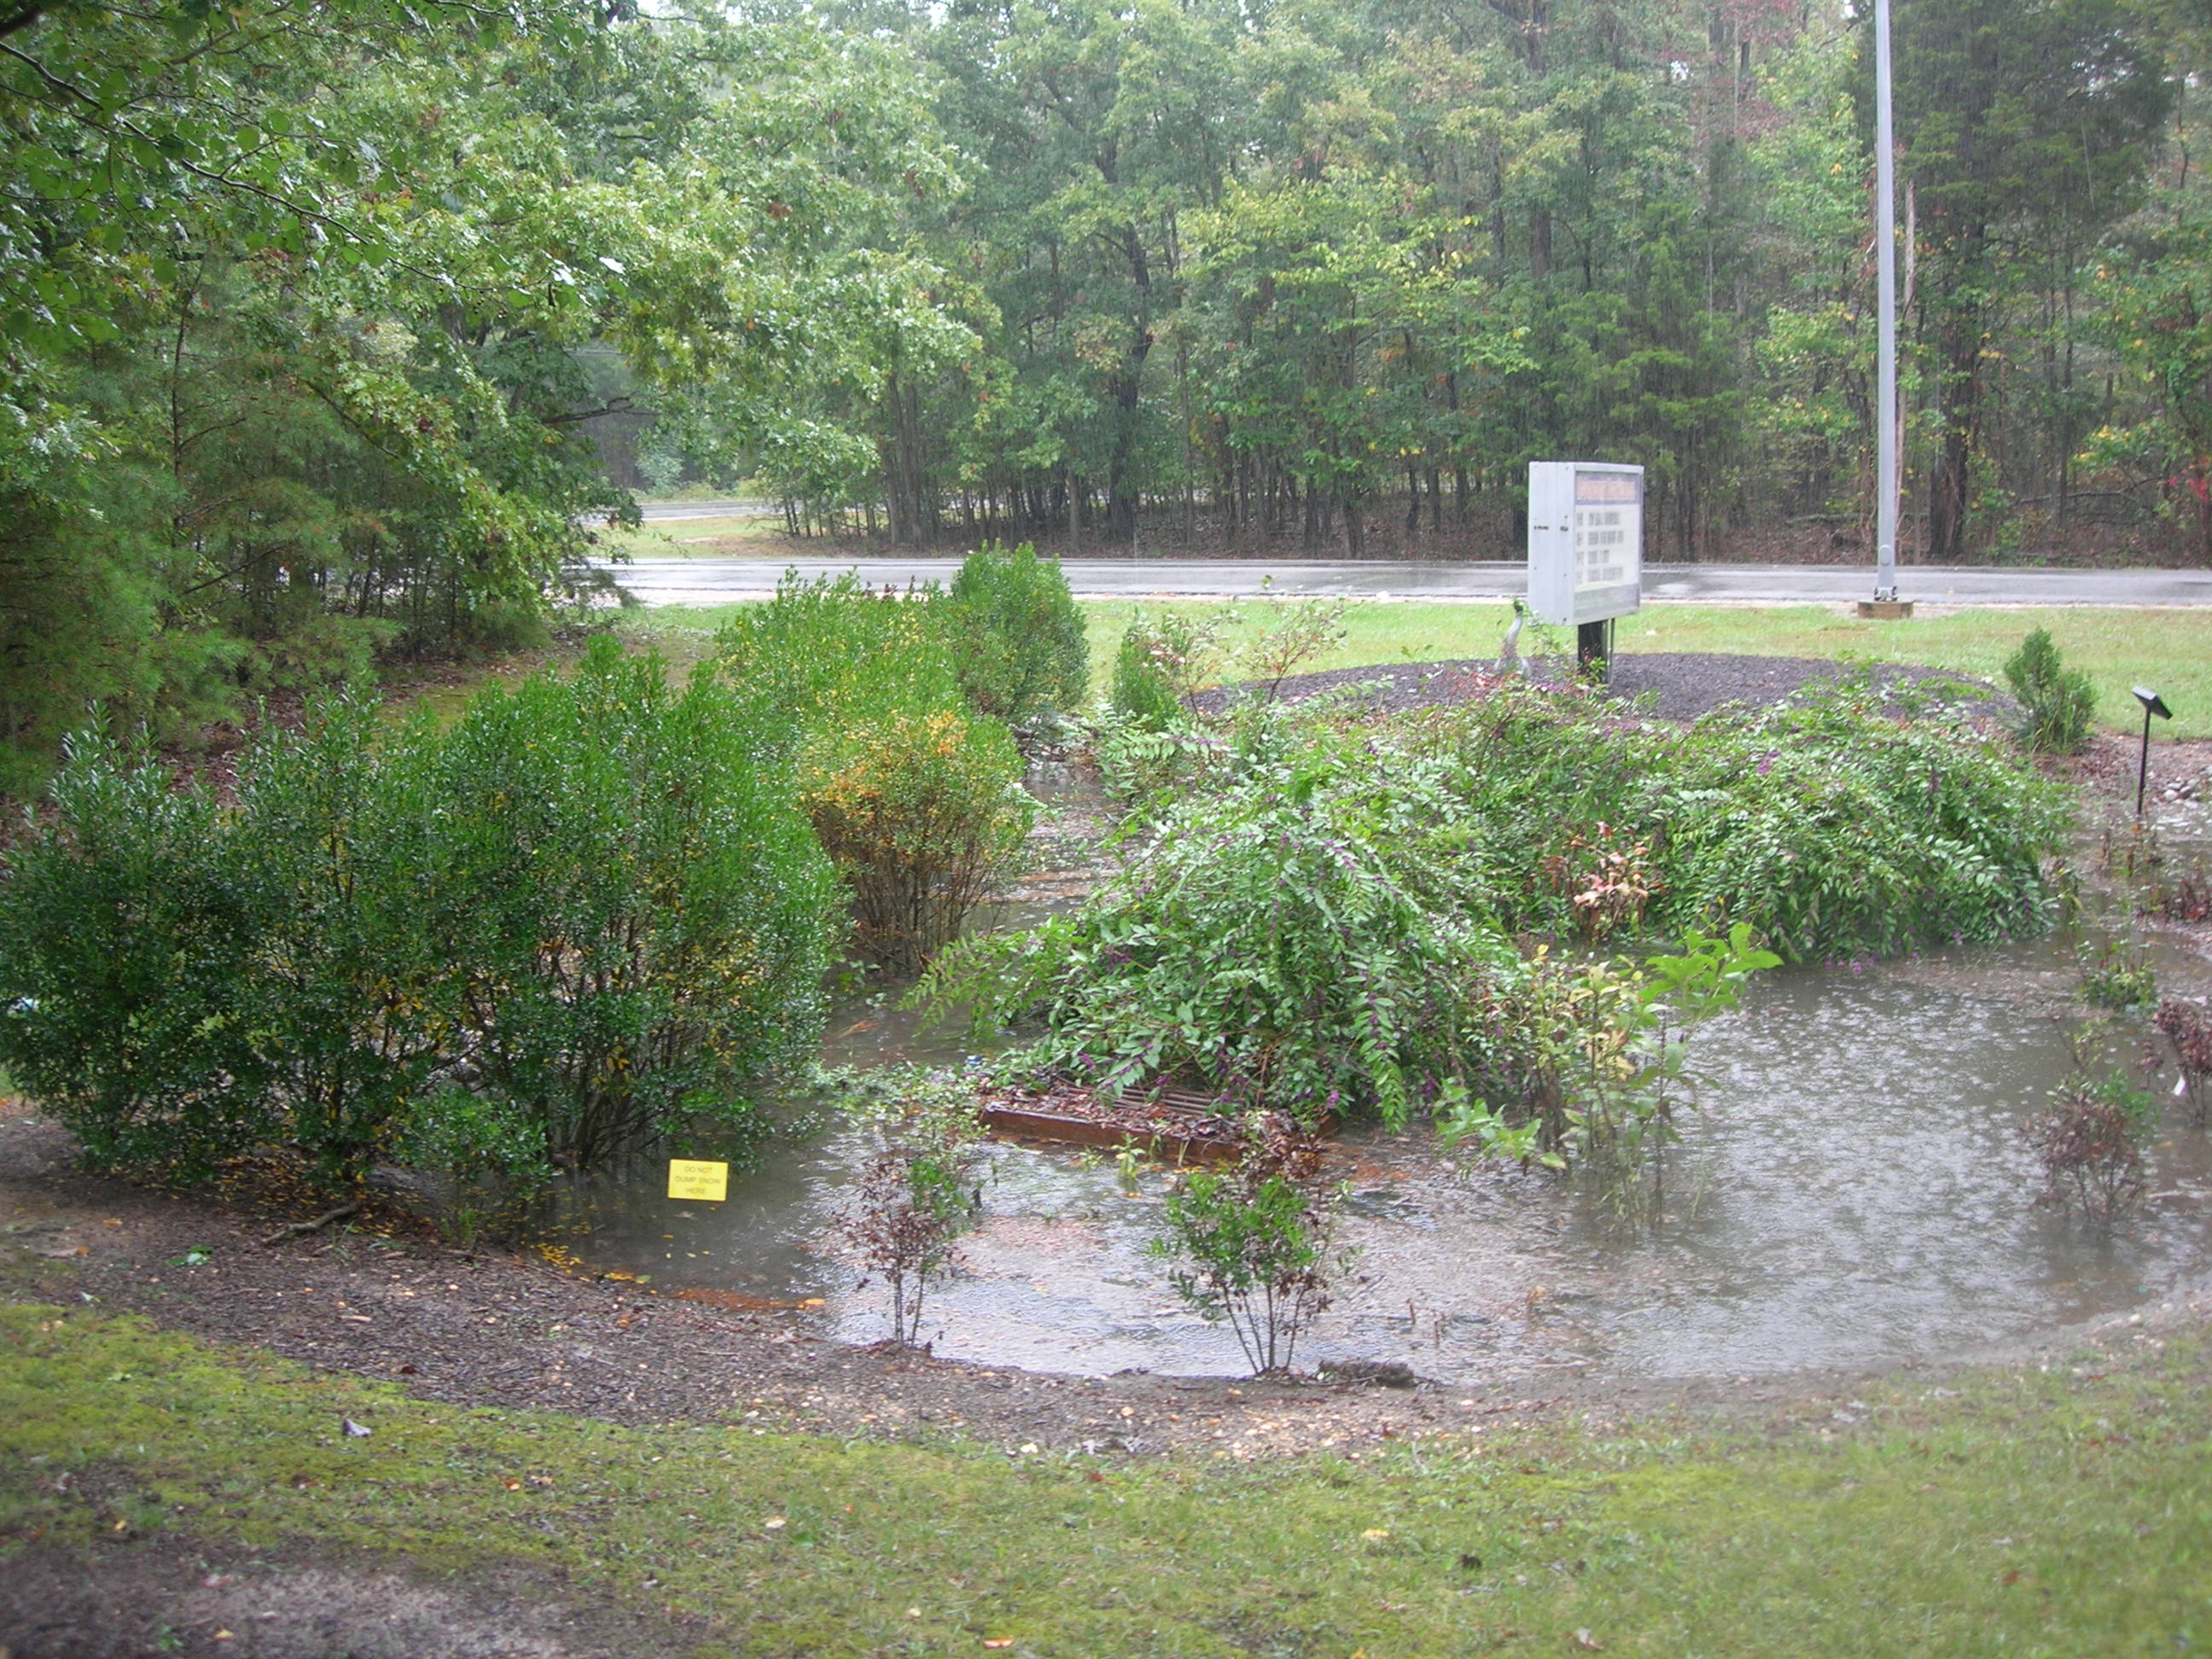 McDonough rain garden absorbing stormwater from the parking lot during the approach of Hurricane Joaquin